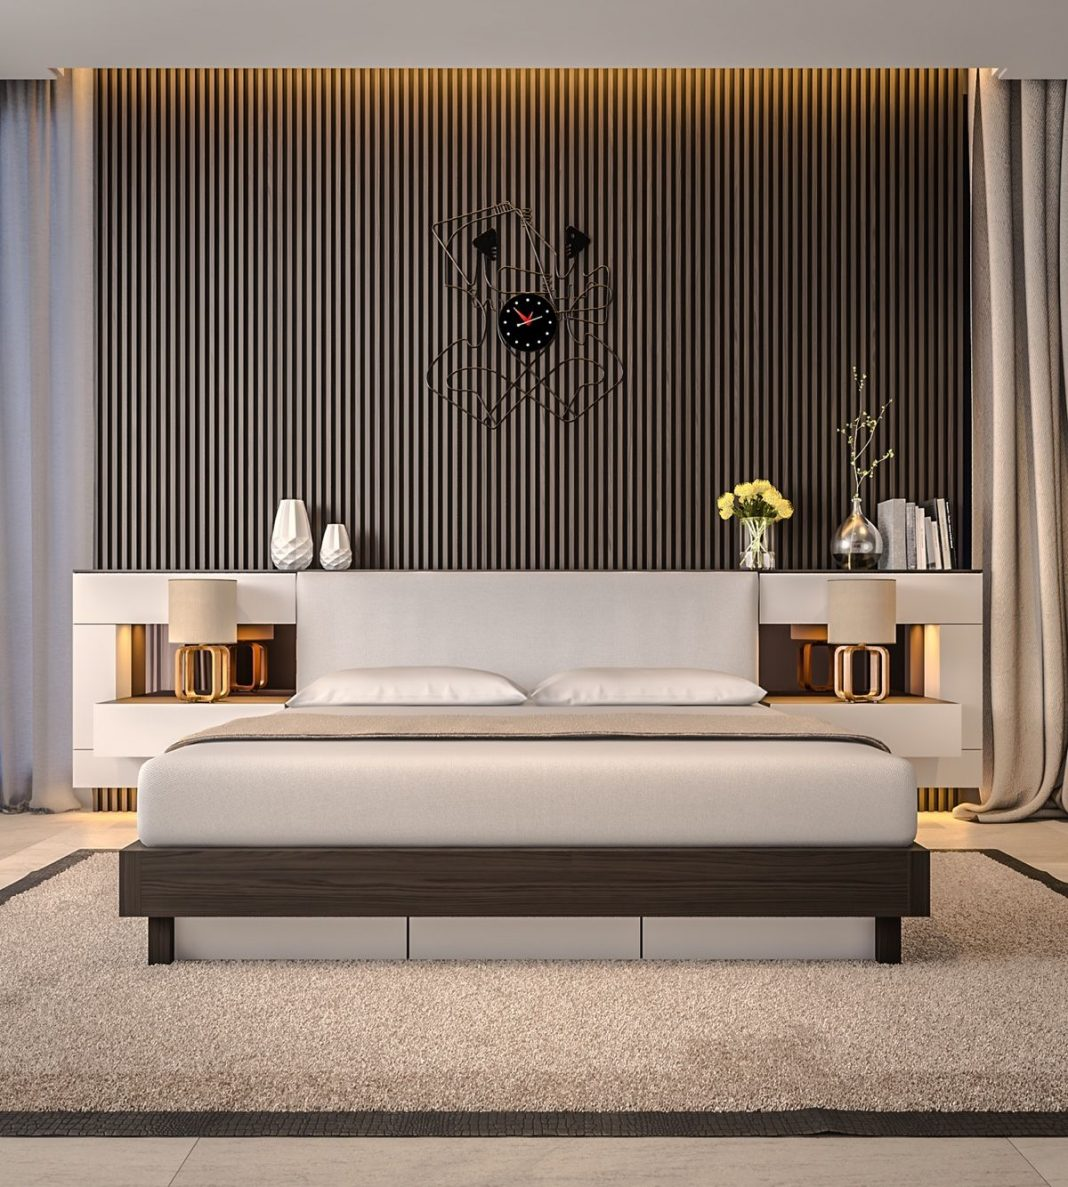 cool bedroom designs which use slats for accent wall decor i